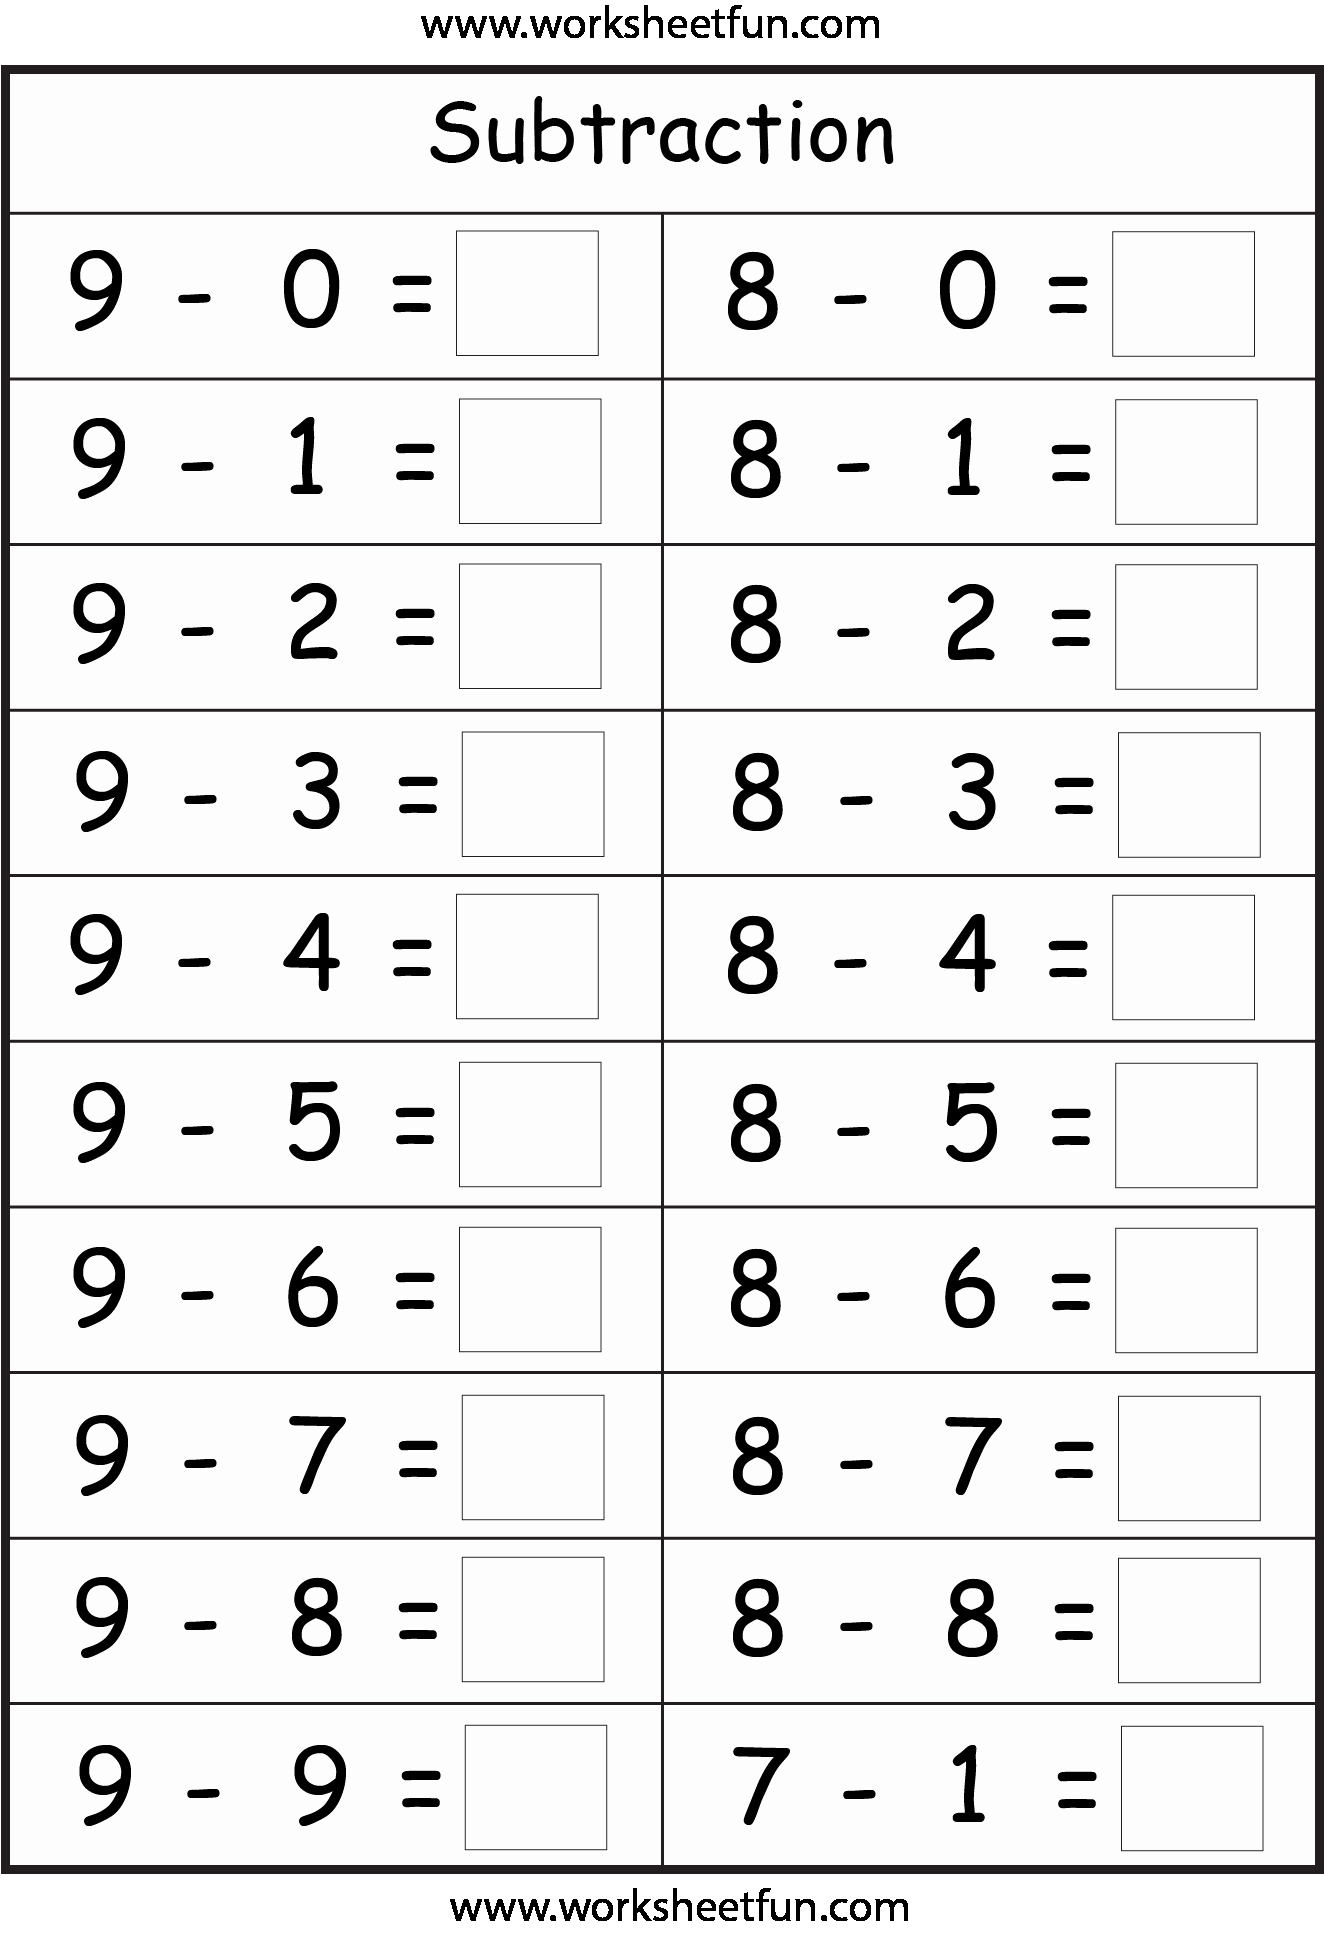 Subtraction Worksheet for Kindergarten Best Of Subtraction – 4 Worksheets Free Printable Worksheets